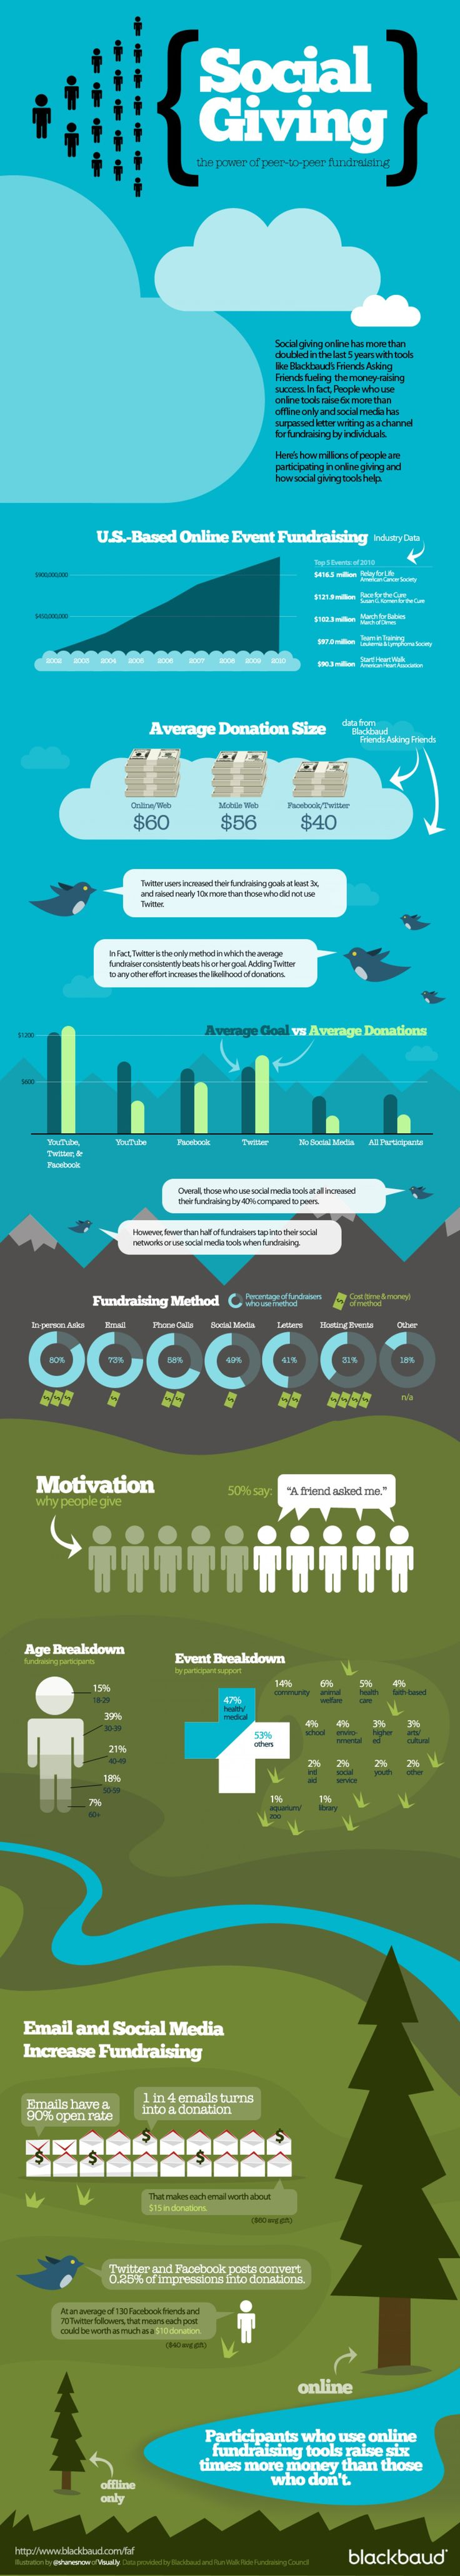 Social Giving The Power of Peer to Peer Fundraising  Infographic #infographic #fundraising